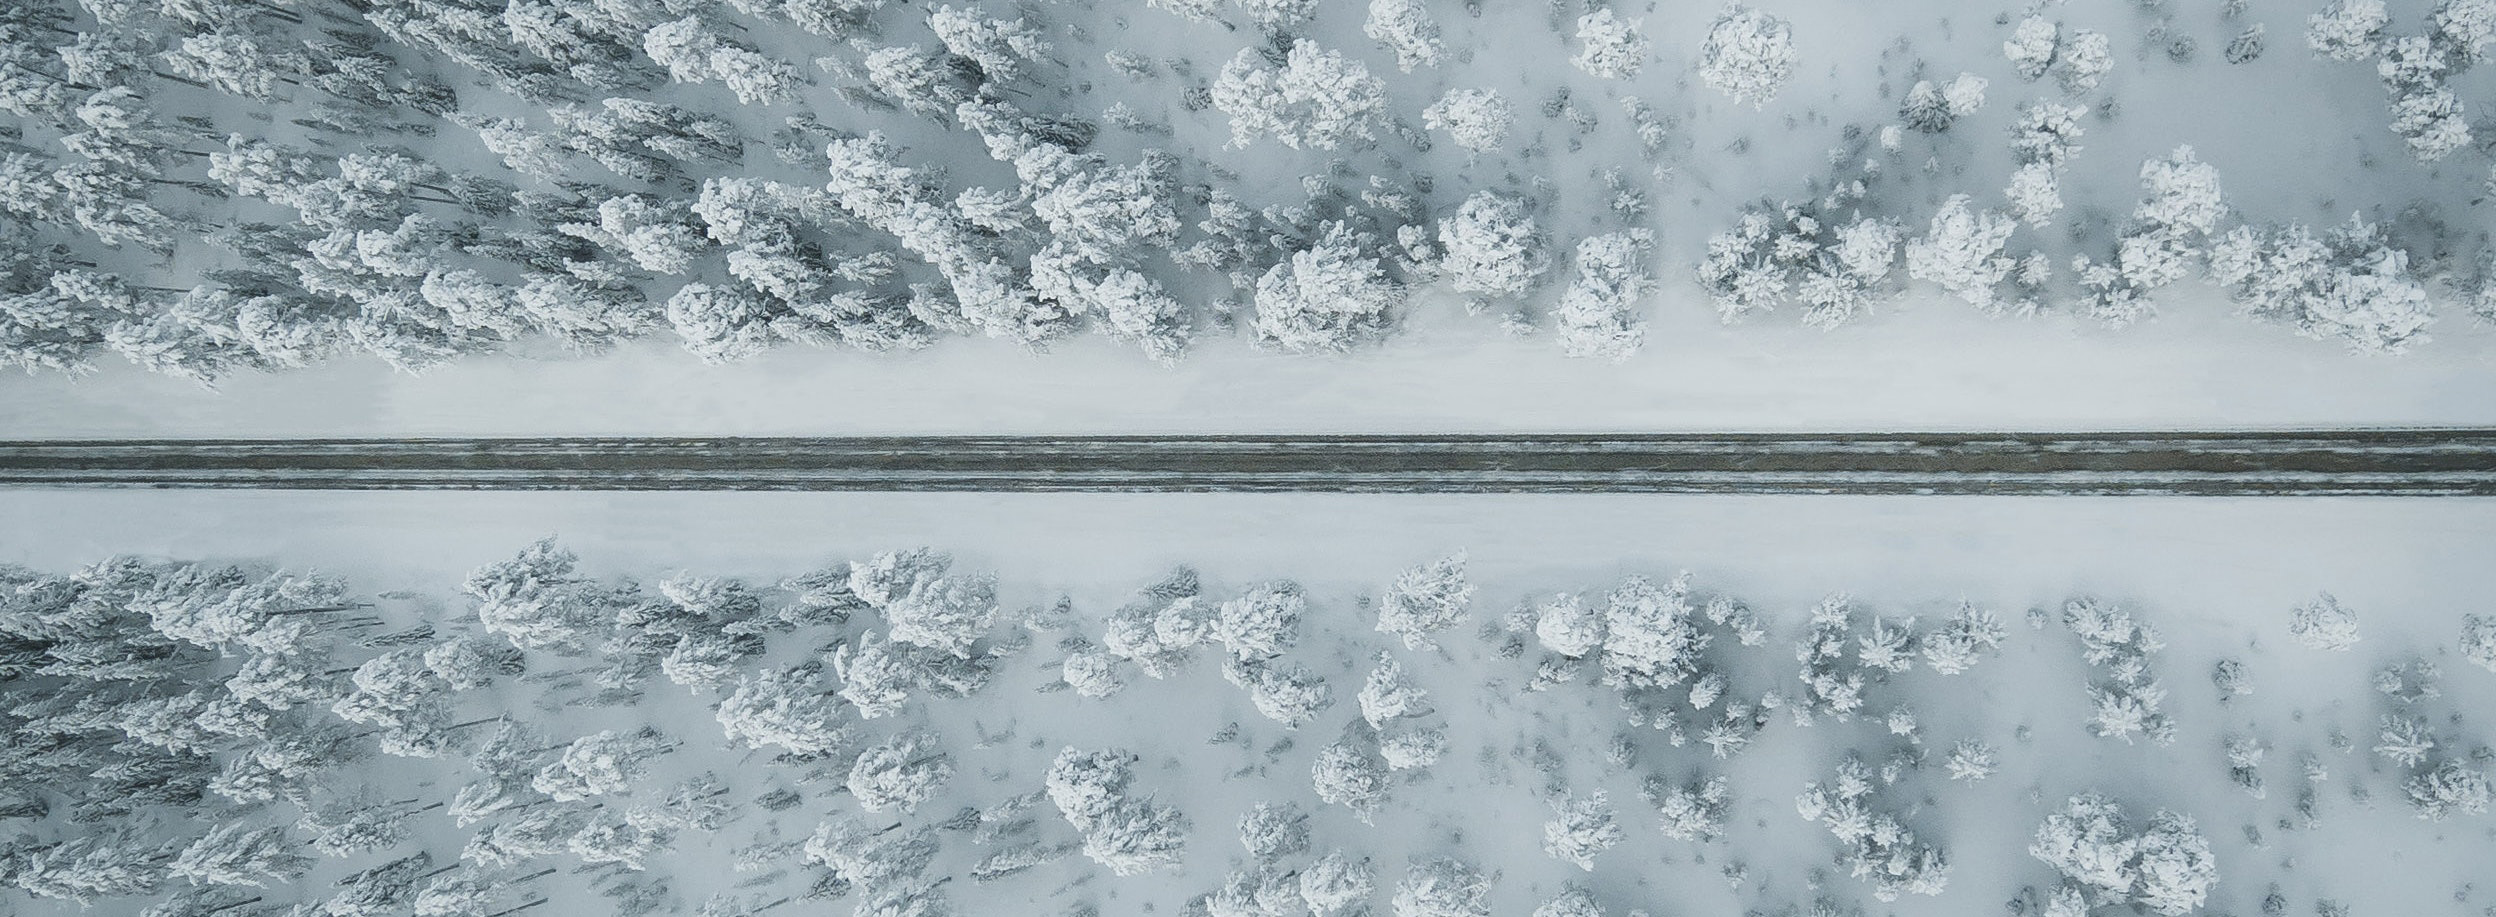 A winter landscape shot from above with trees and a road in the middle